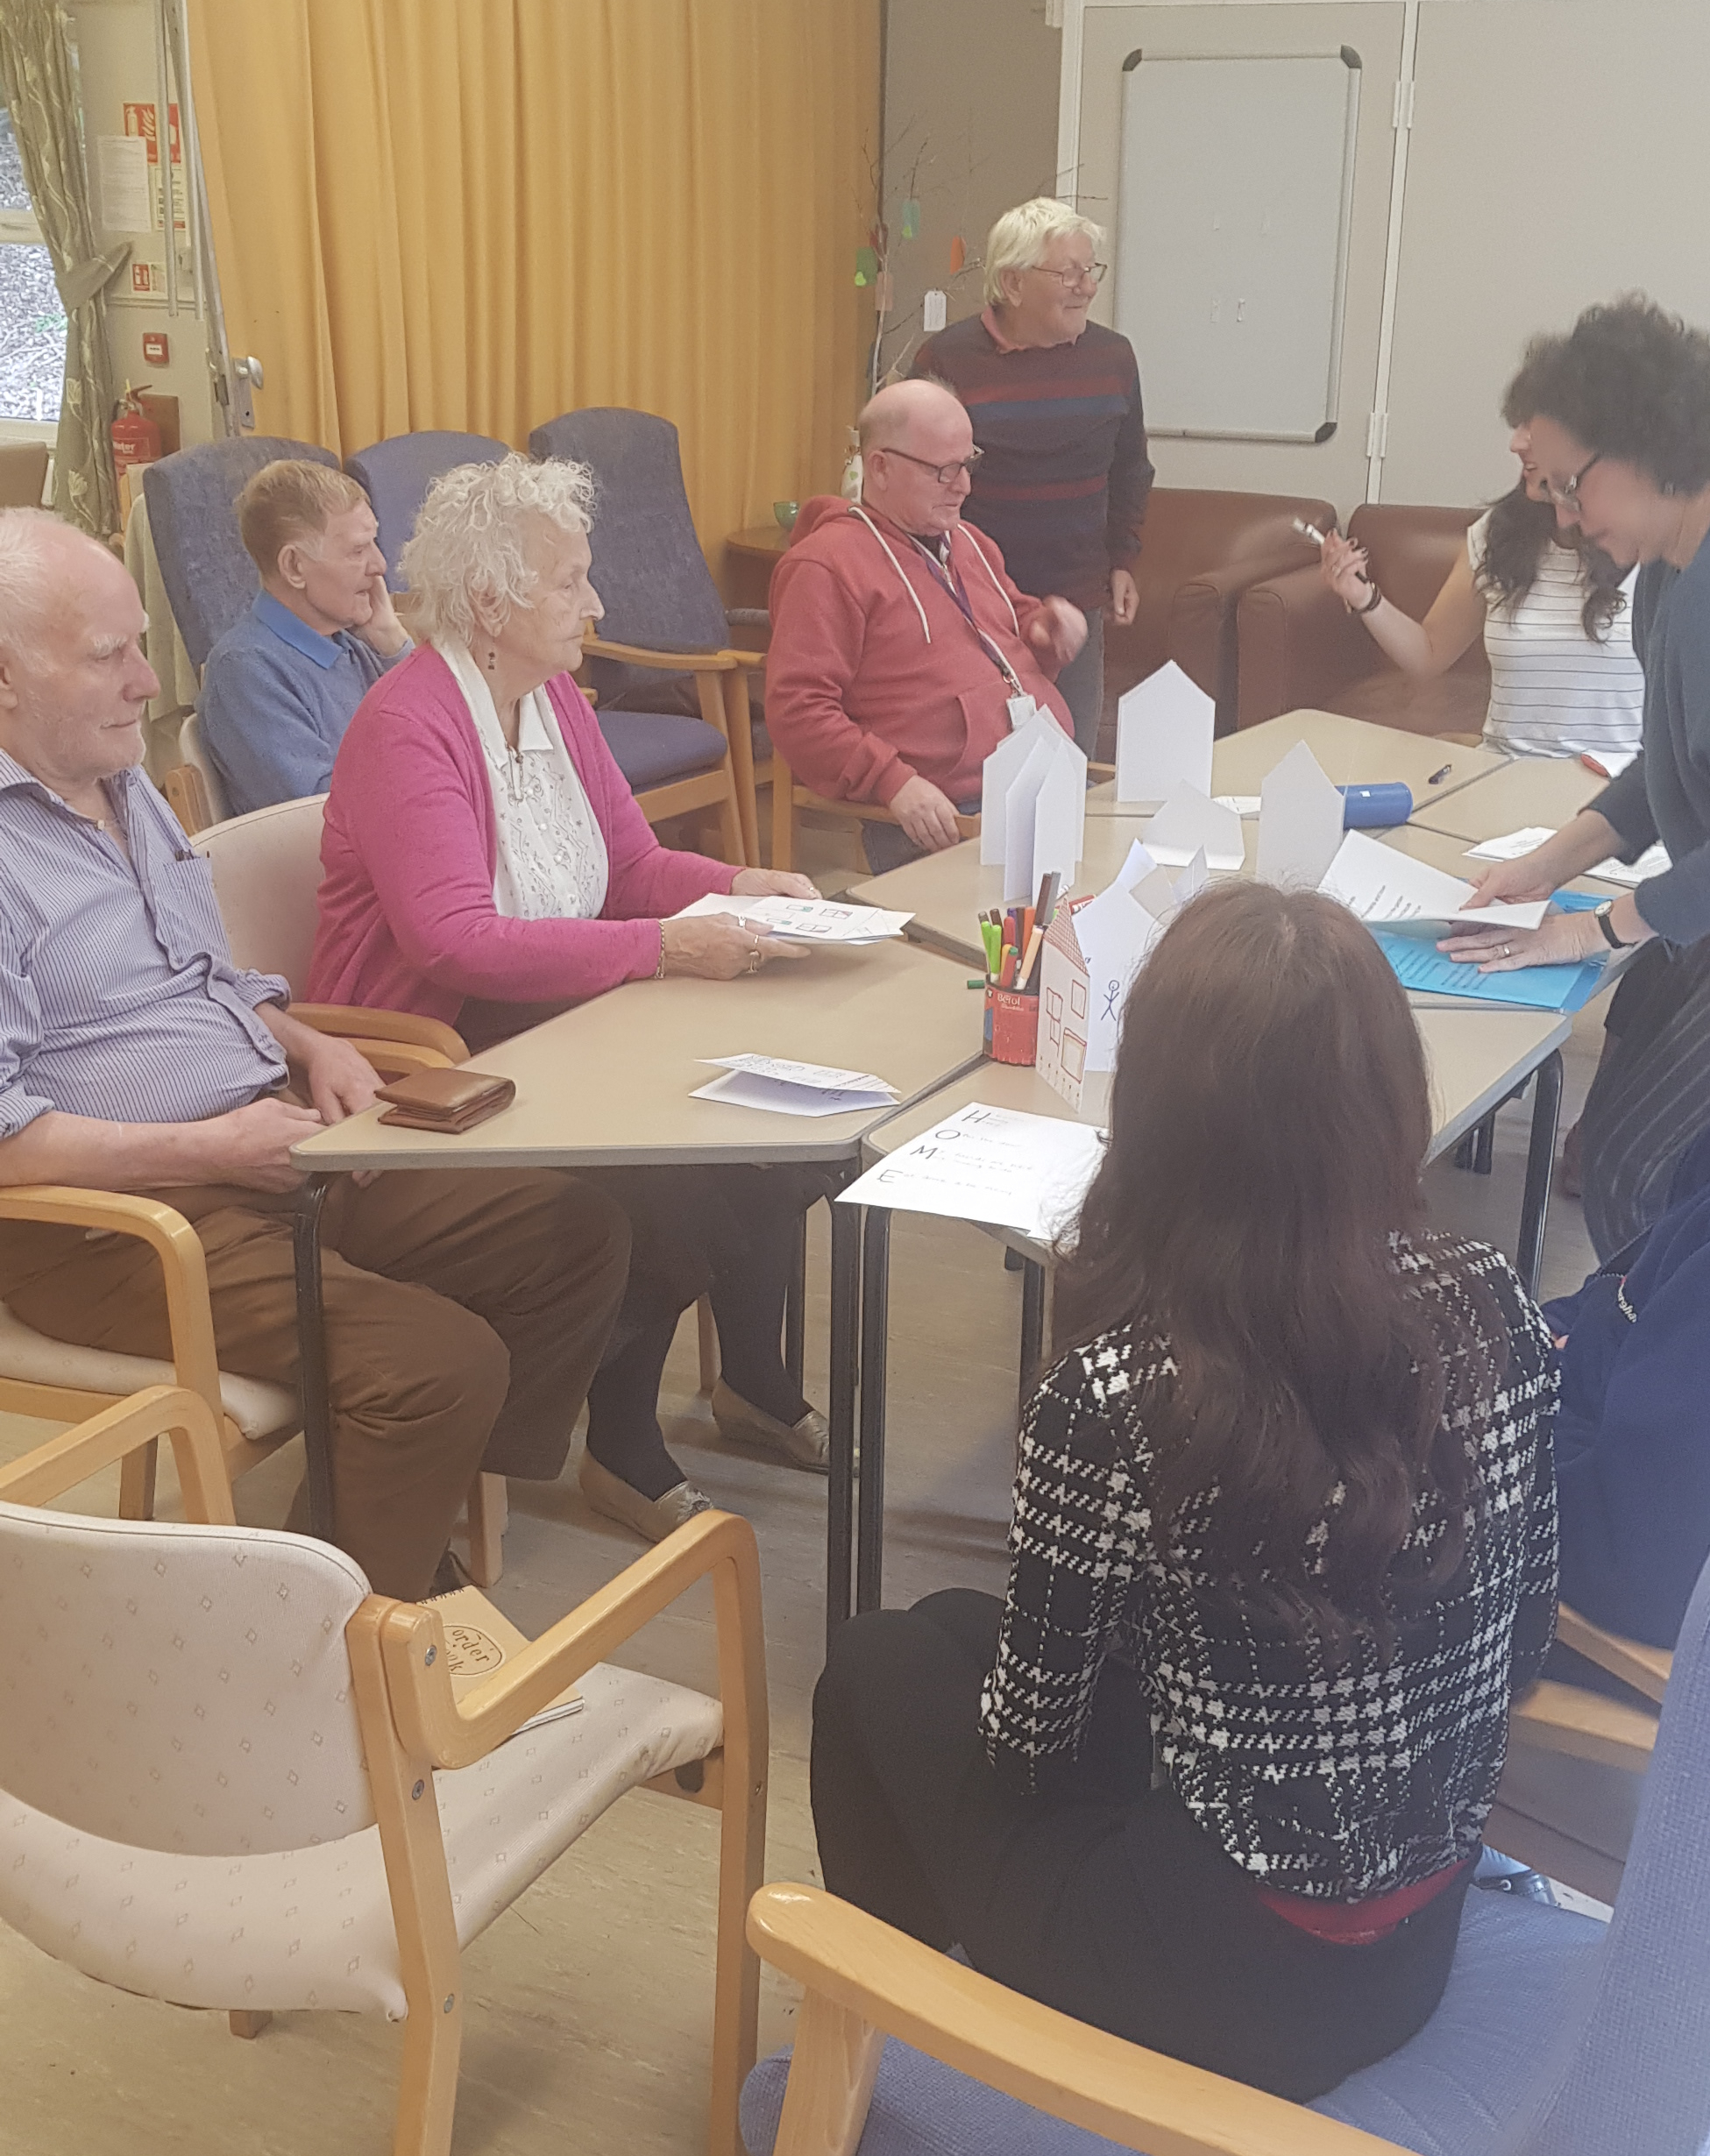 Session at Woodclough Day Centre